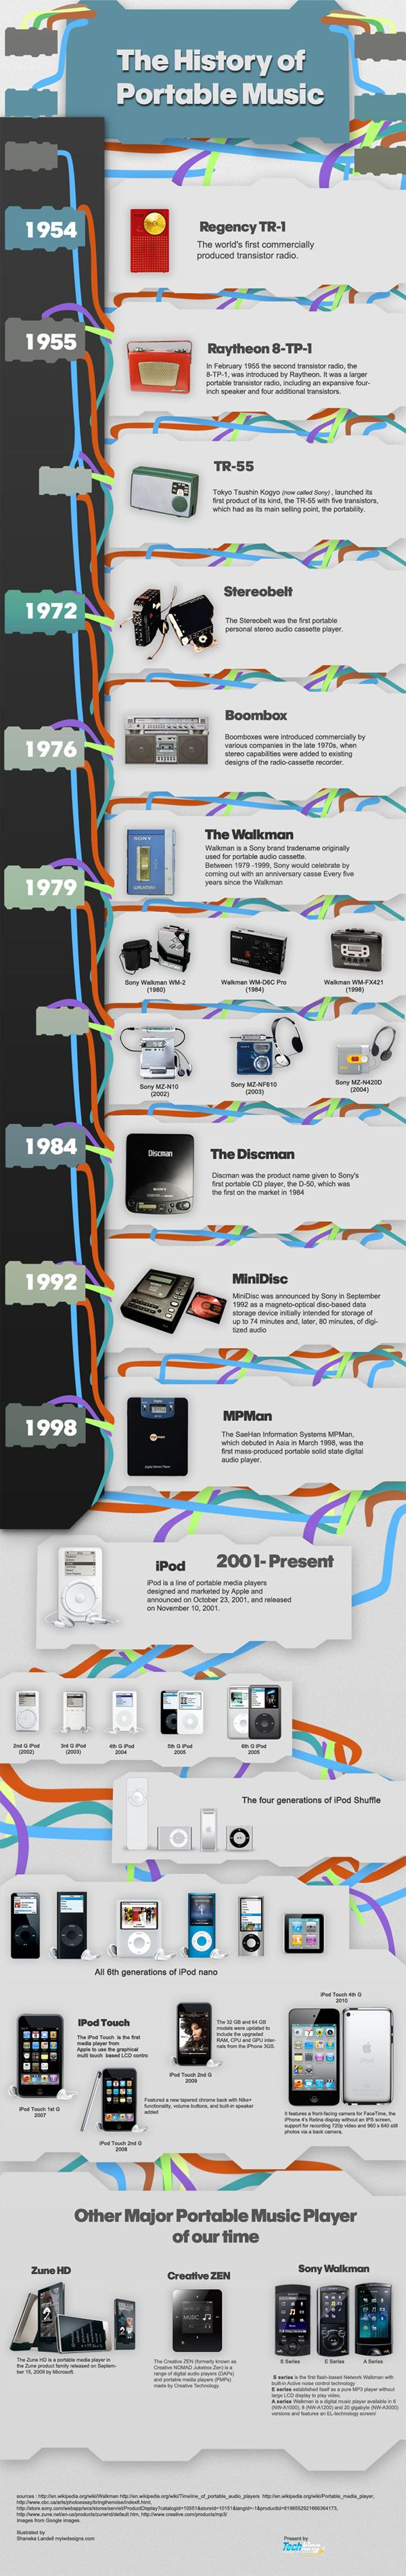 the history of portable music....AKA how the iPod took over everything